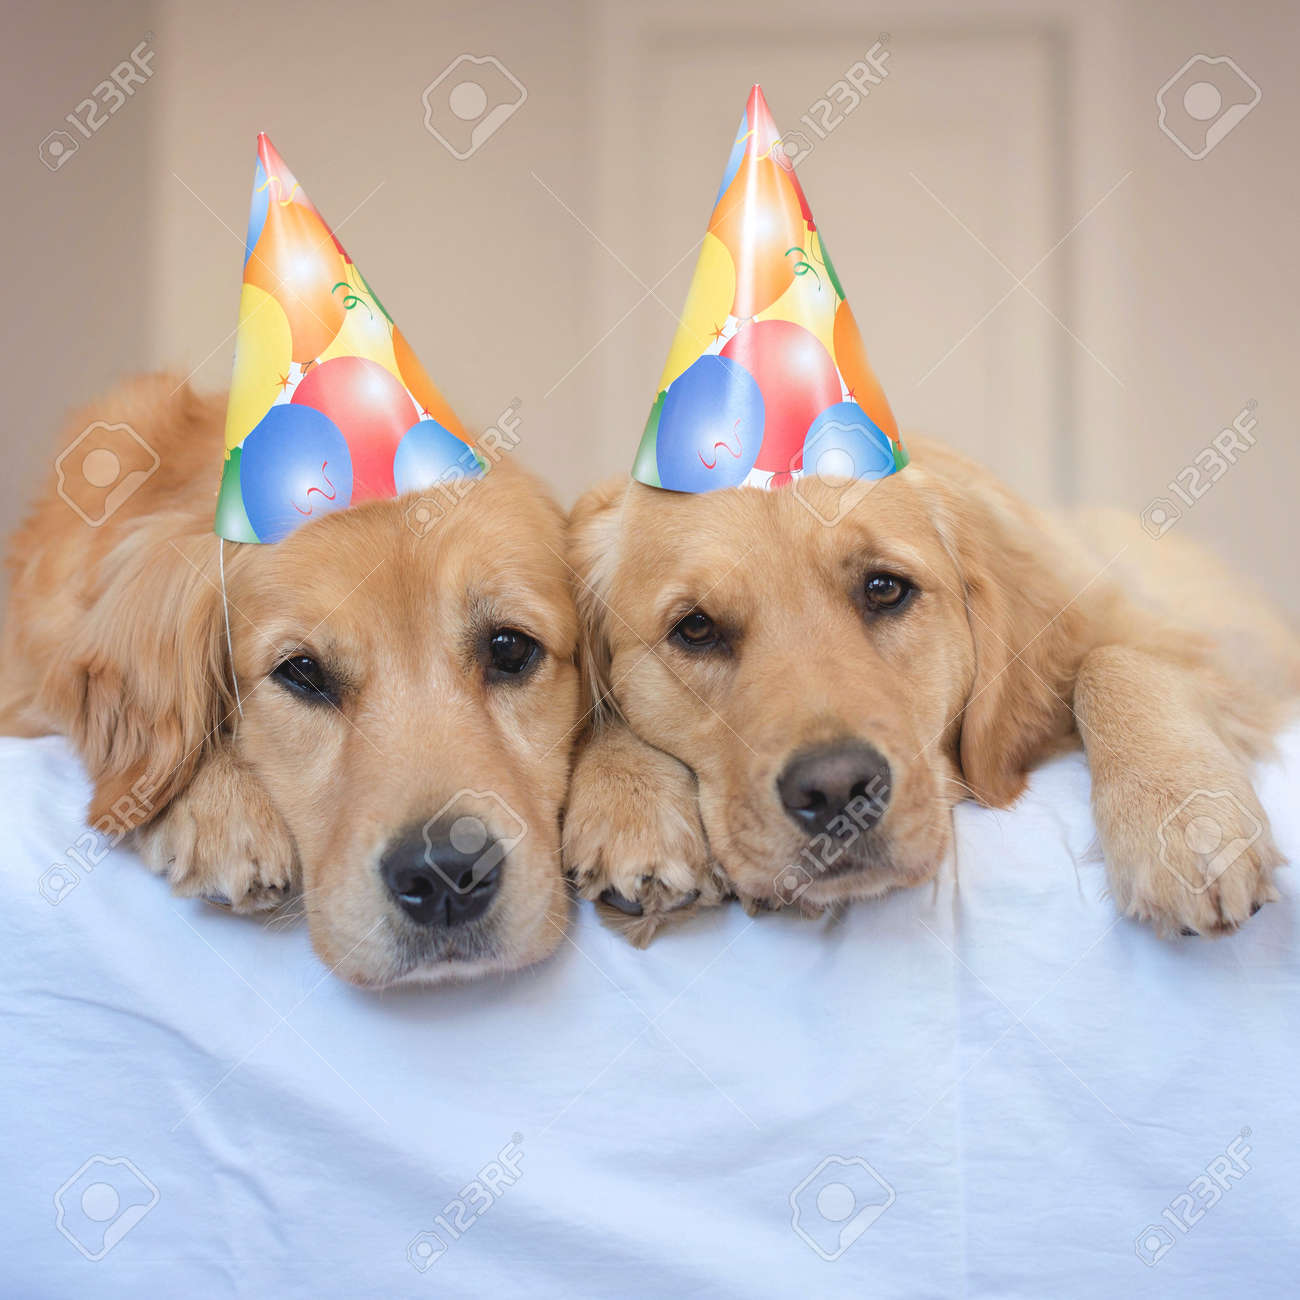 Two Golden Retriever Dogs Wearing Party Hats Stock Photo Picture